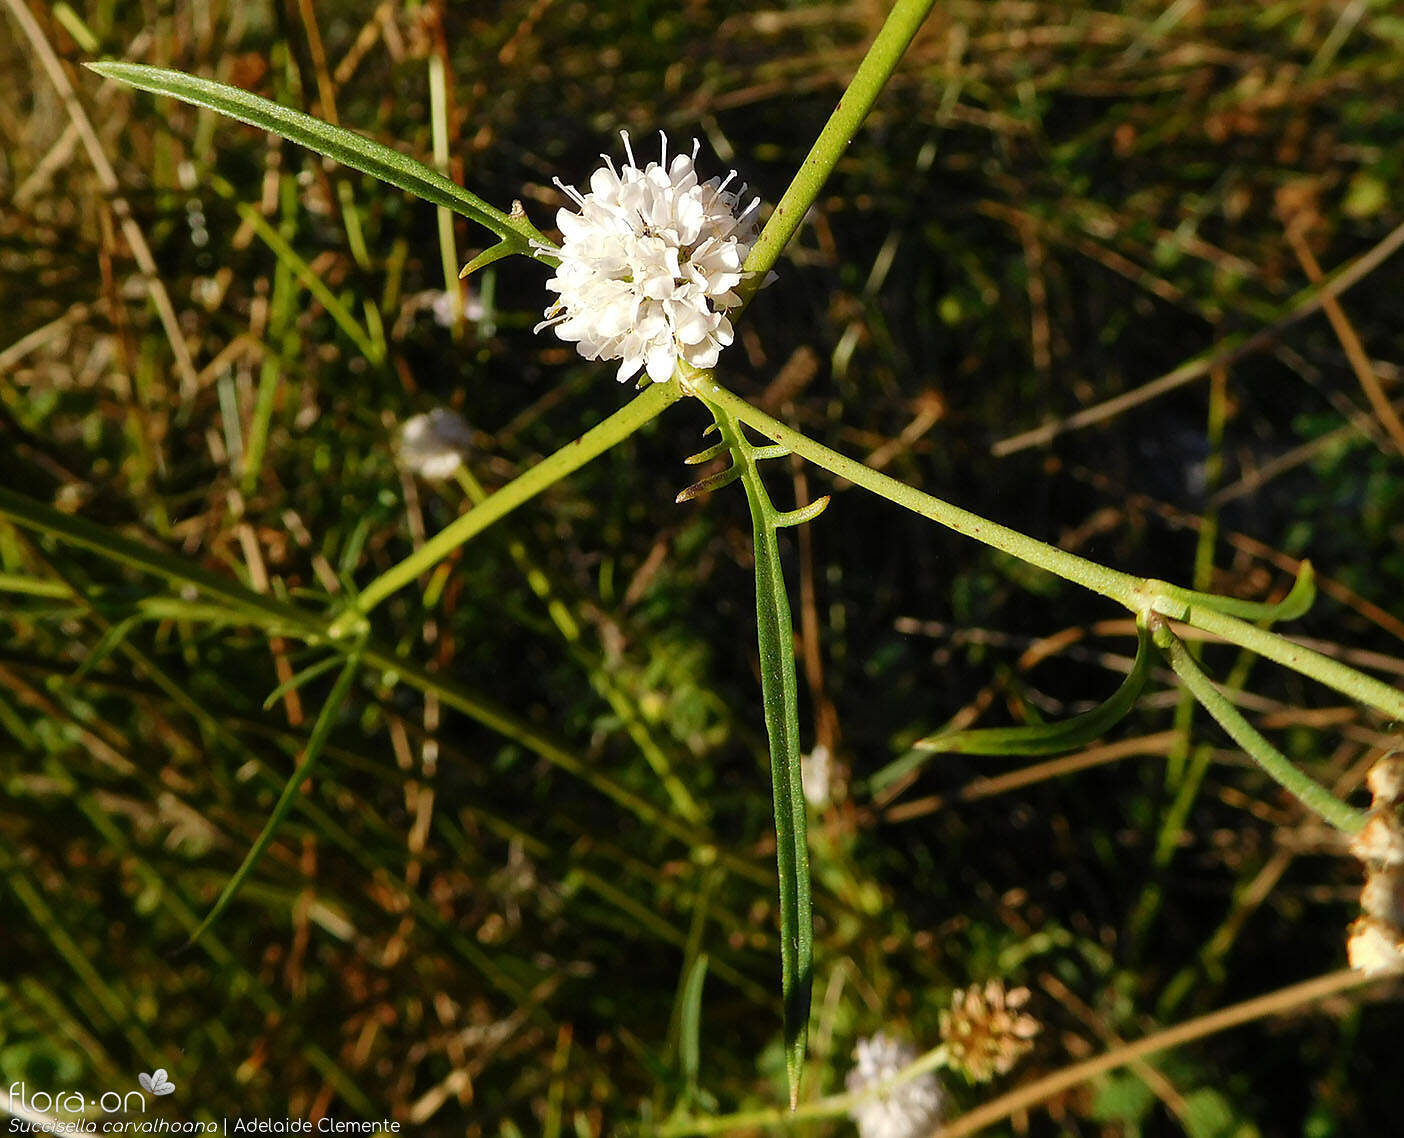 Succisella carvalhoana - Flor (geral) | Adelaide Clemente; CC BY-NC 4.0